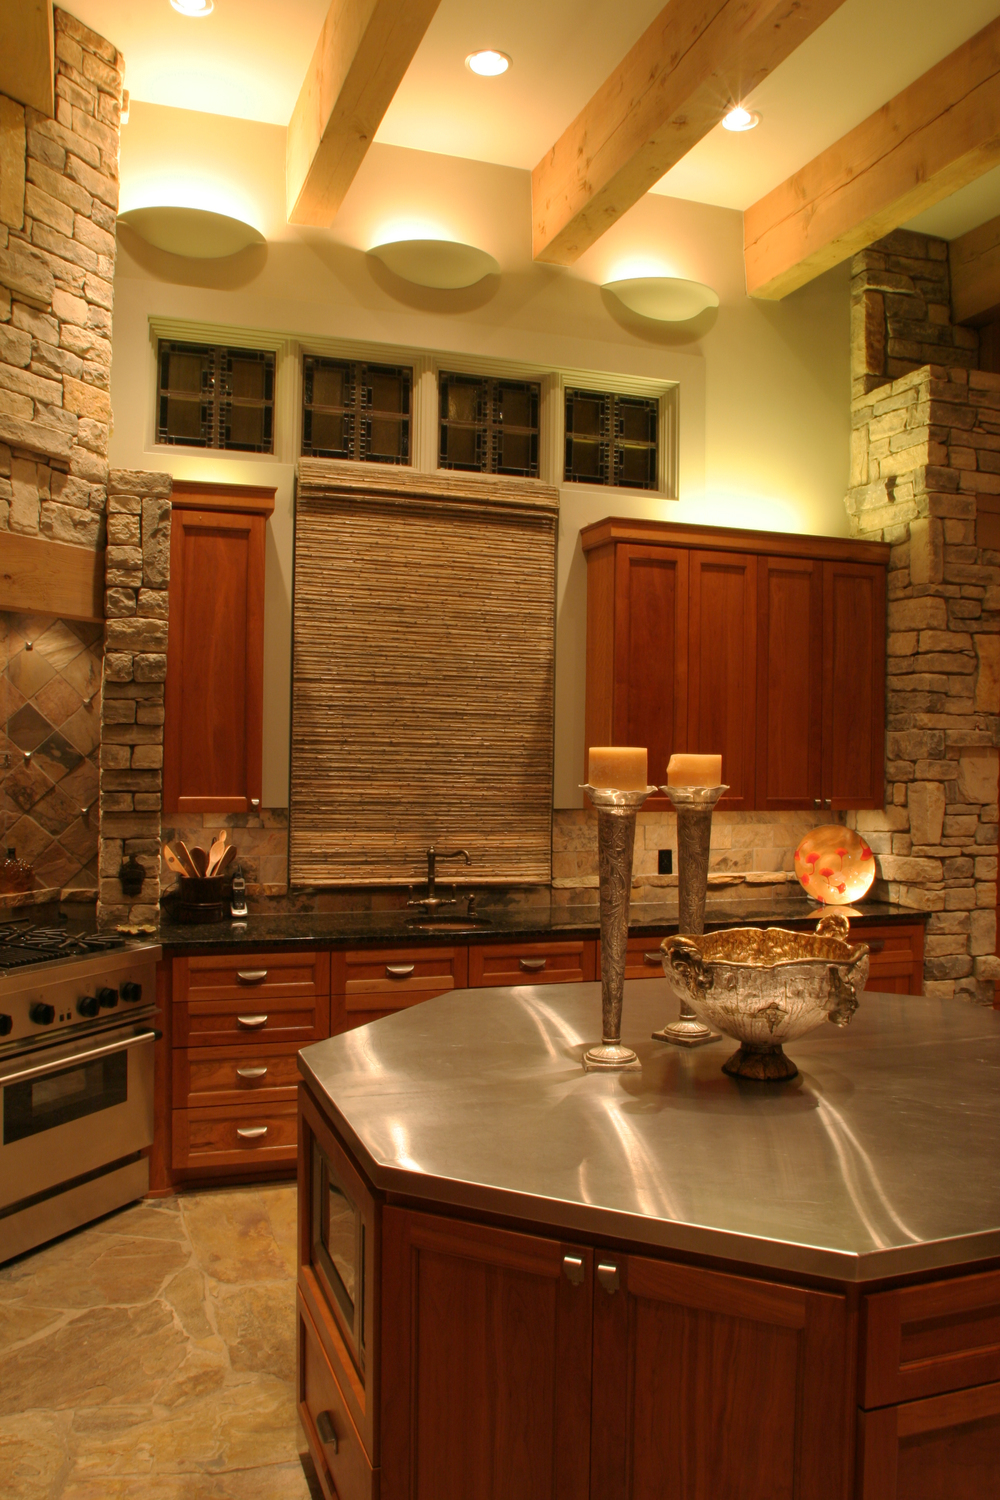 BIFANO KITCHEN.jpg